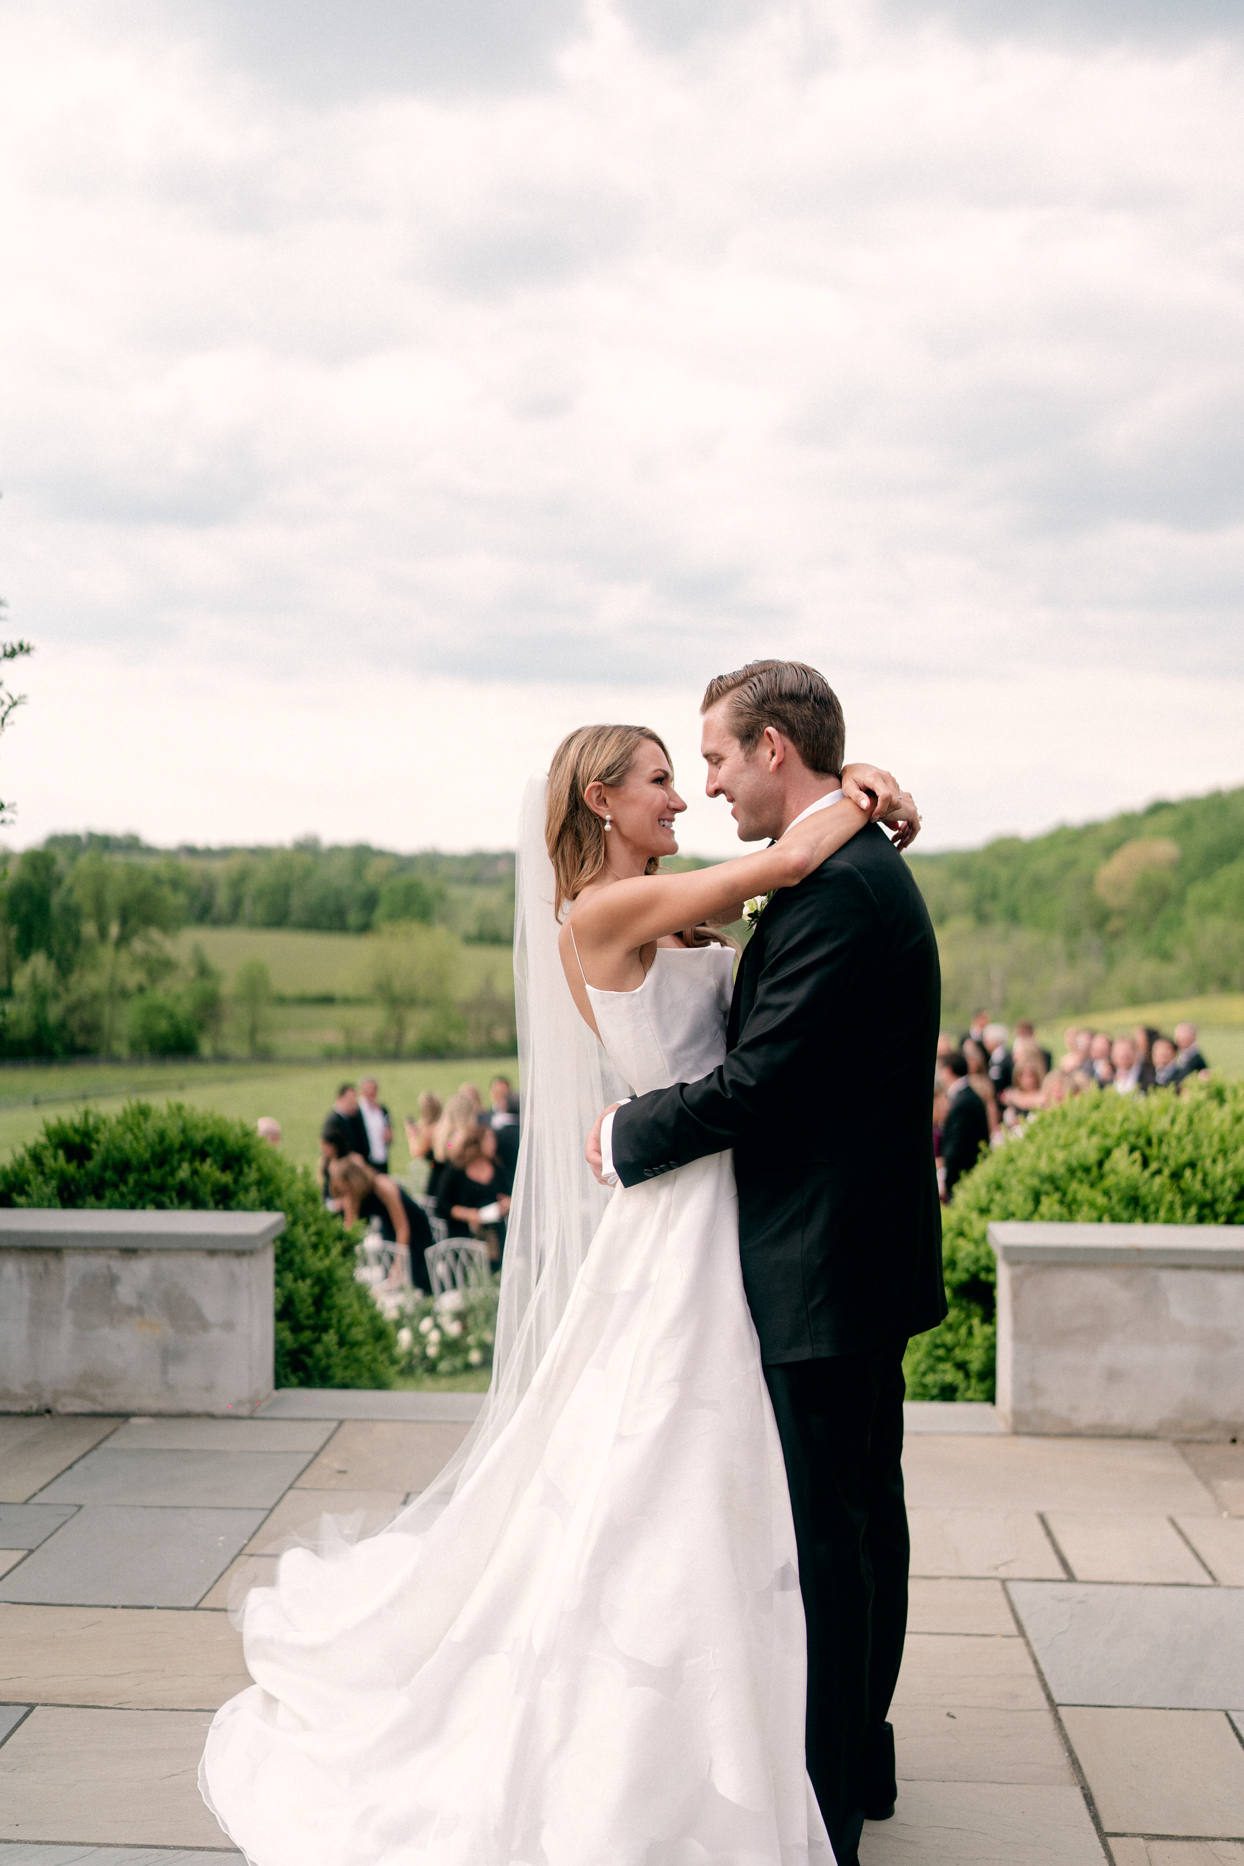 bride and groom smiling during embrace on stone patio